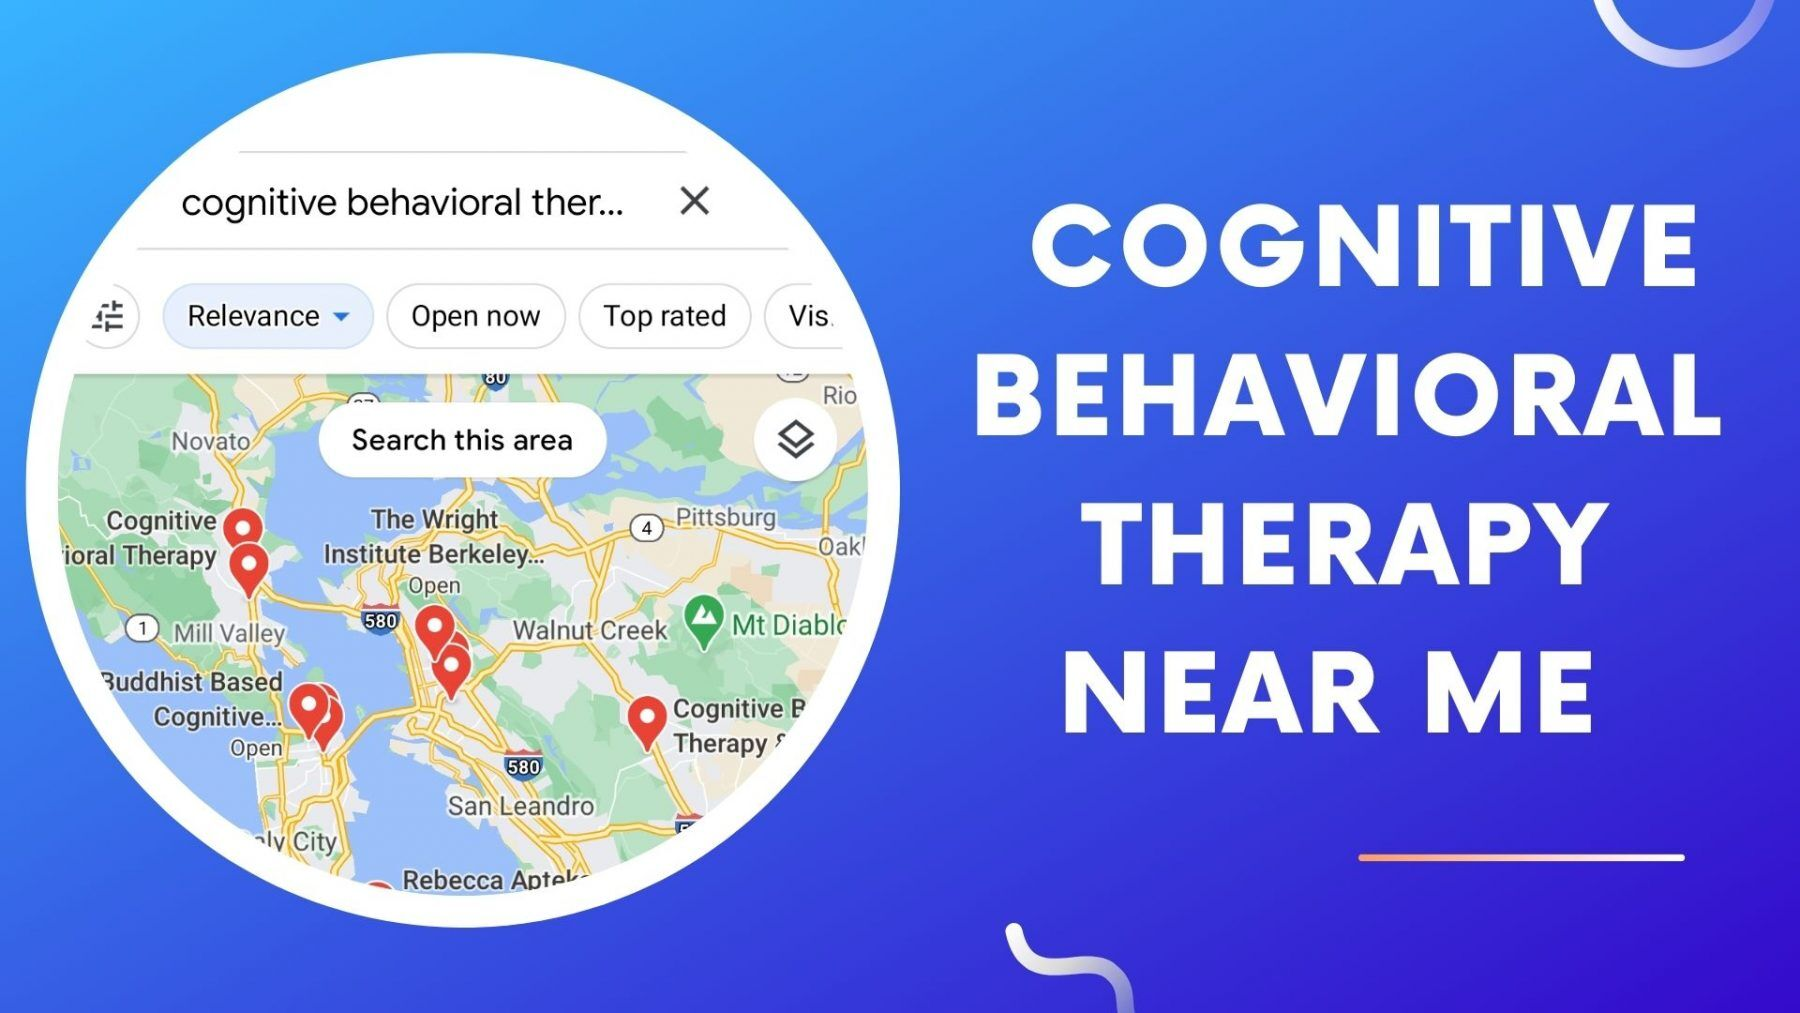 cognitive behavioral therapy near me